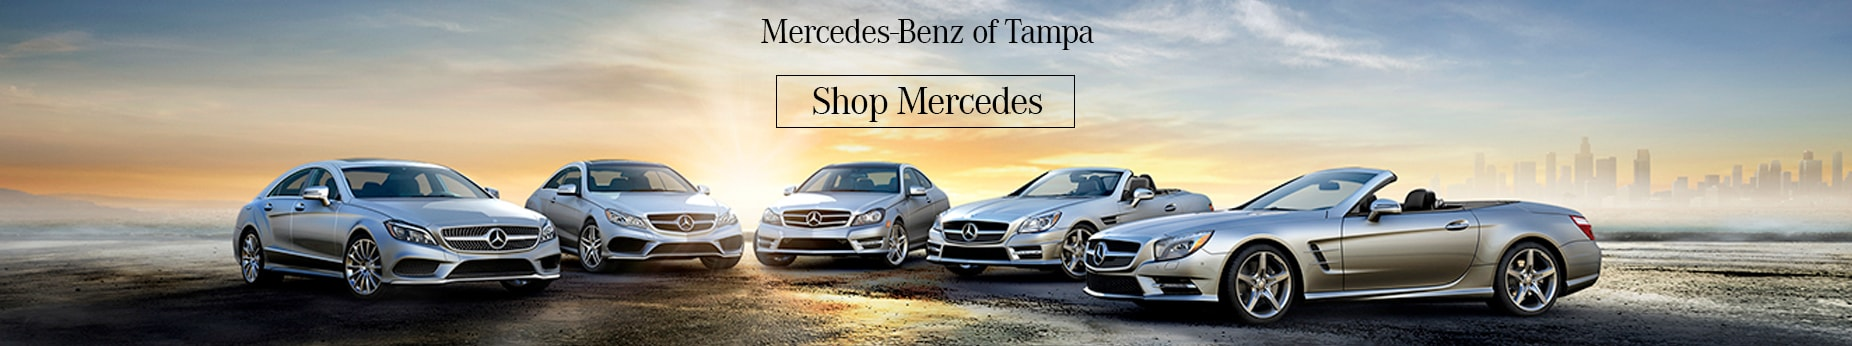 Mercedes dealer near tampa orlando mercedes tampa for Mercedes benz dealer in tampa fl